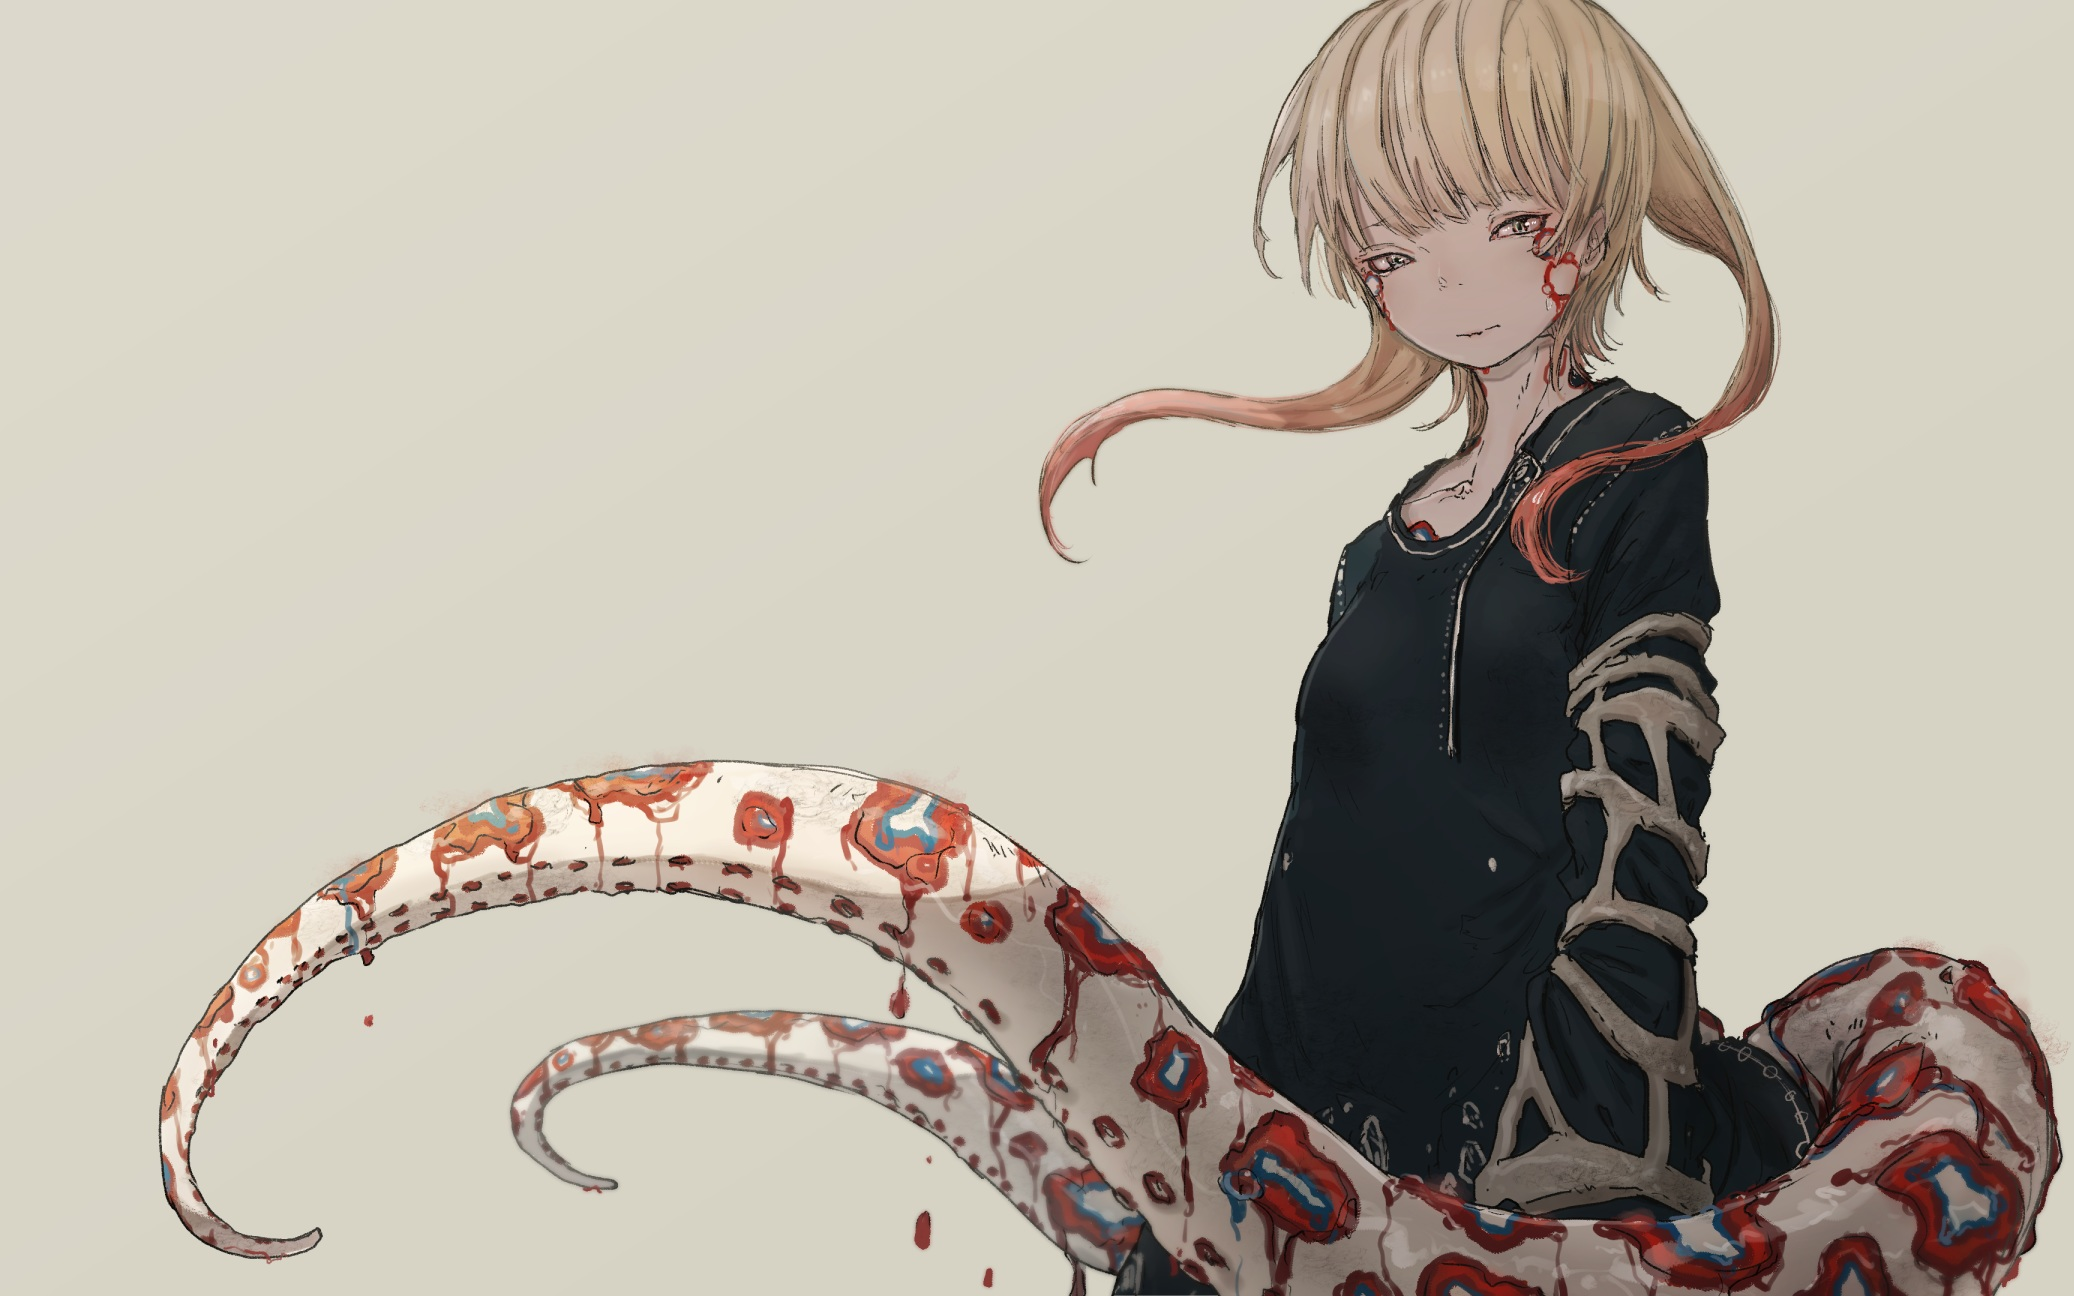 Anime 2074x1296 dress tentacles blonde